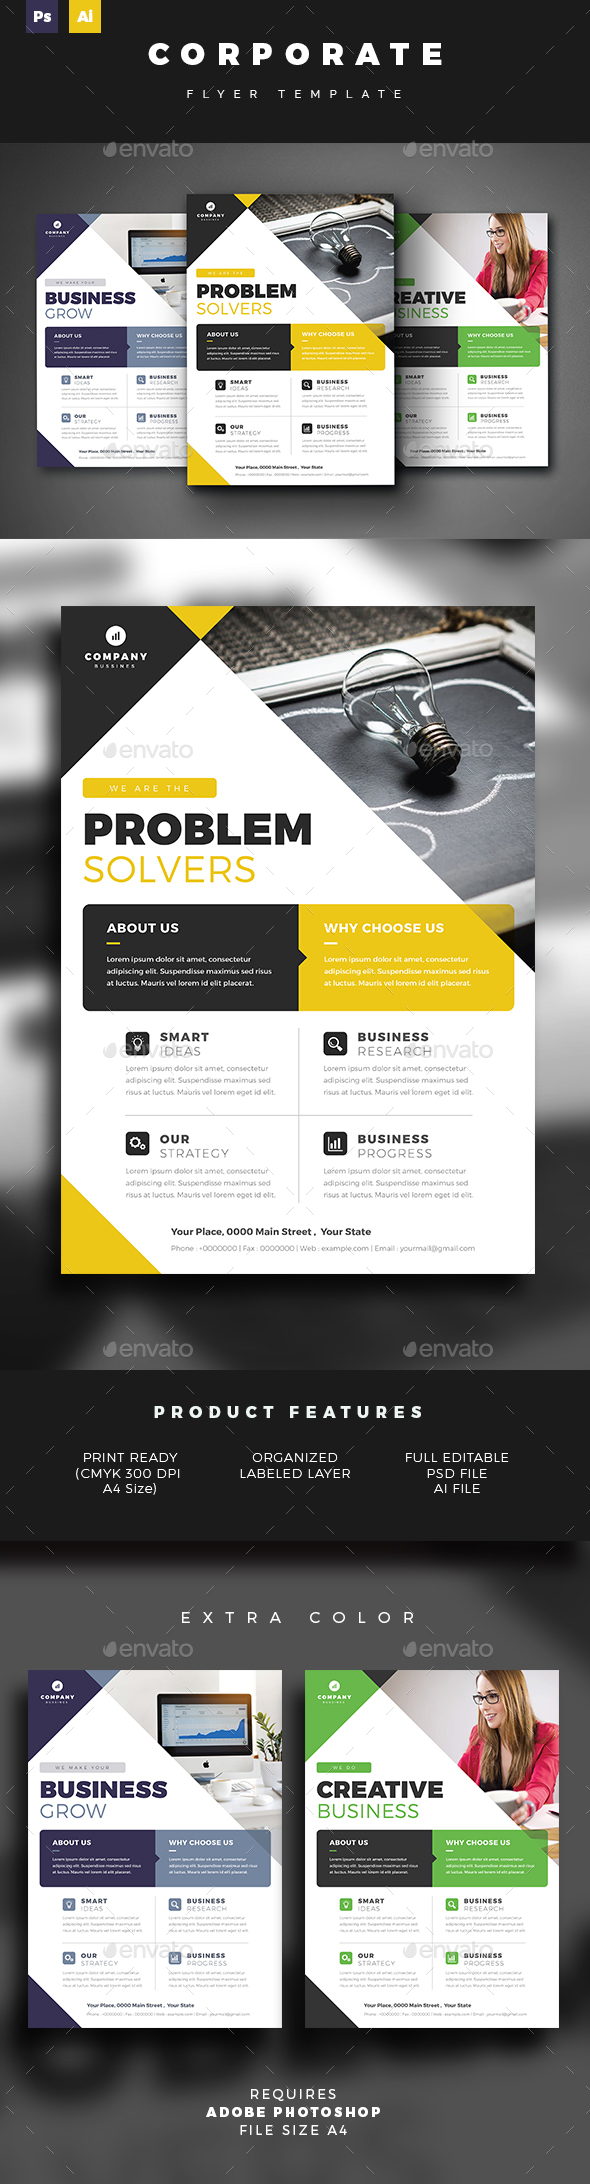 Business Flyer Template 02 - Corporate Business Cards